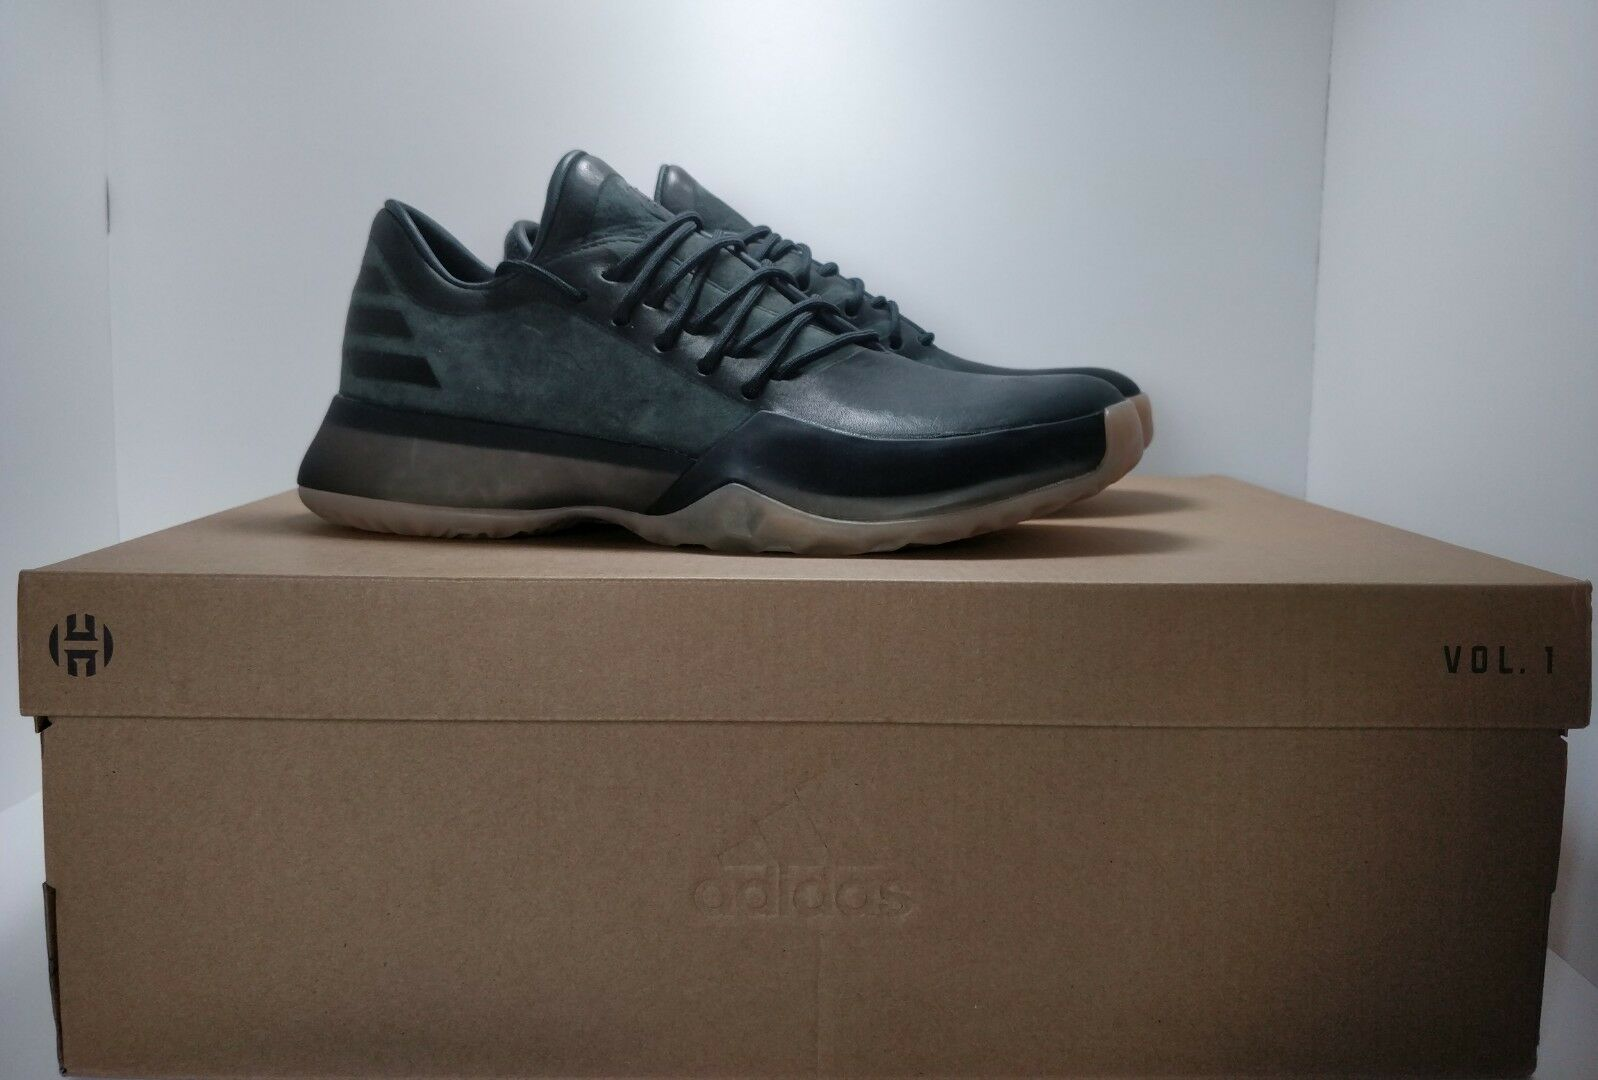 Adidas James Harden Vol 1 Milled Horween Leather Boost FAMILY and FRIENDS 6 RARE